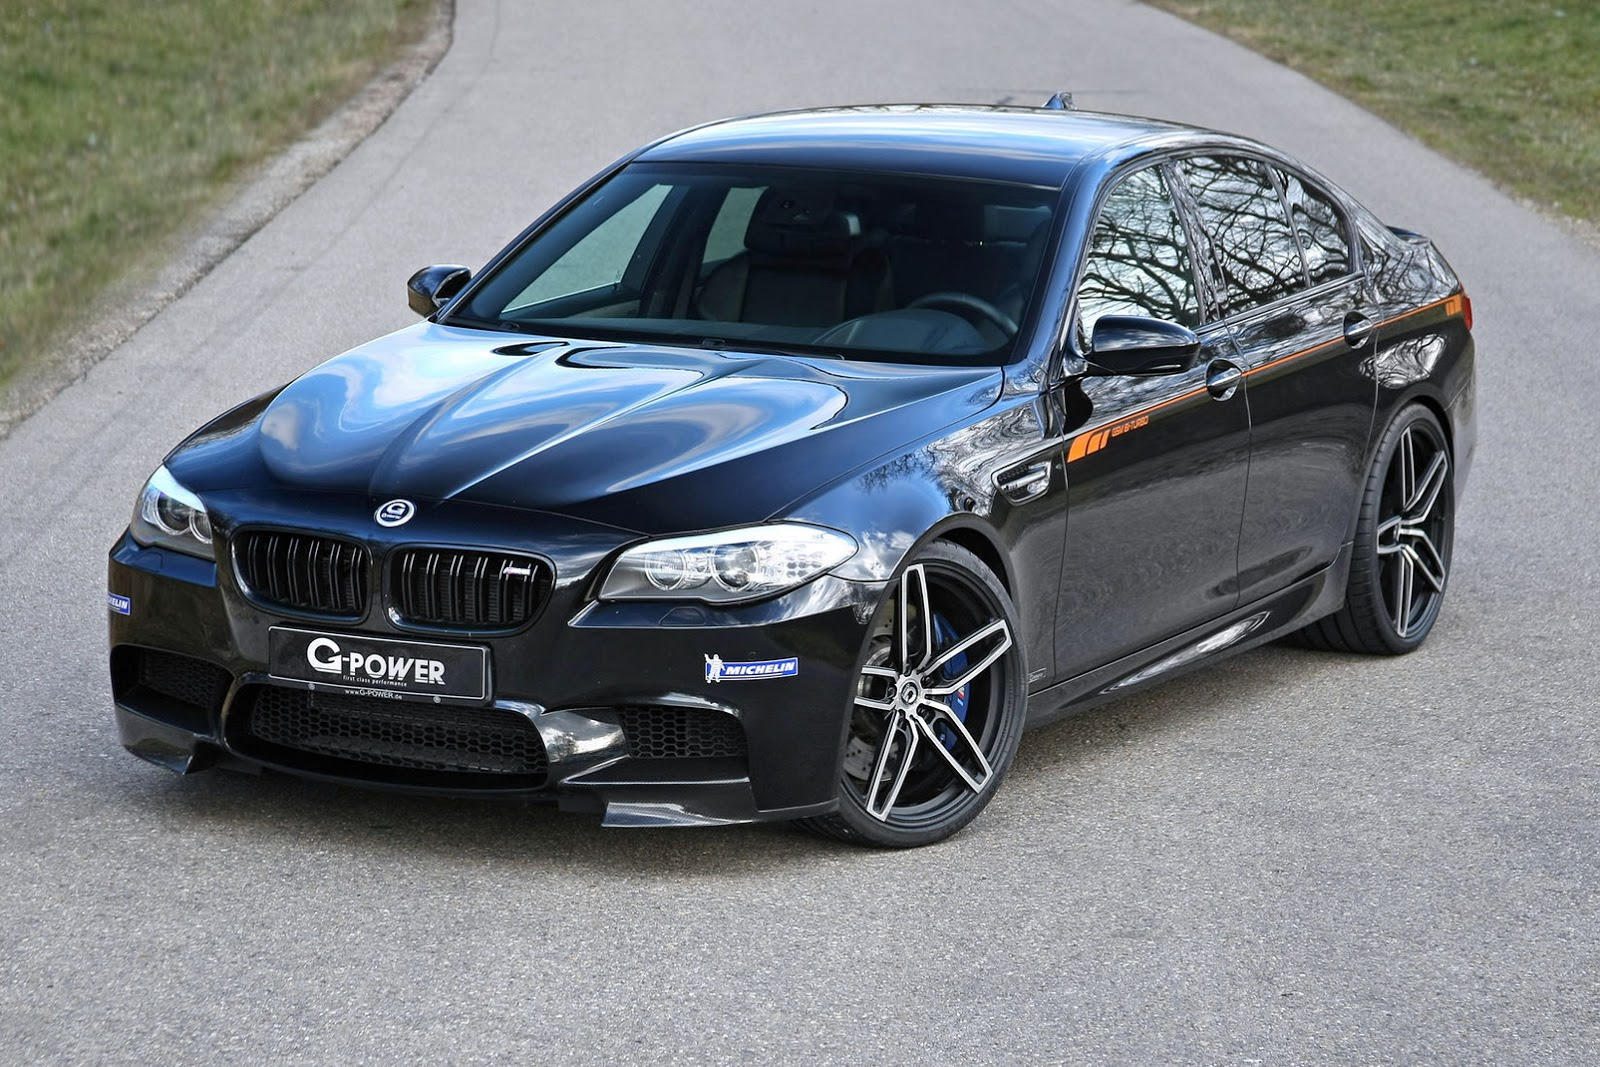 G Power Kit Boosts Bmw M5 F10 To 975nm Performancedrive